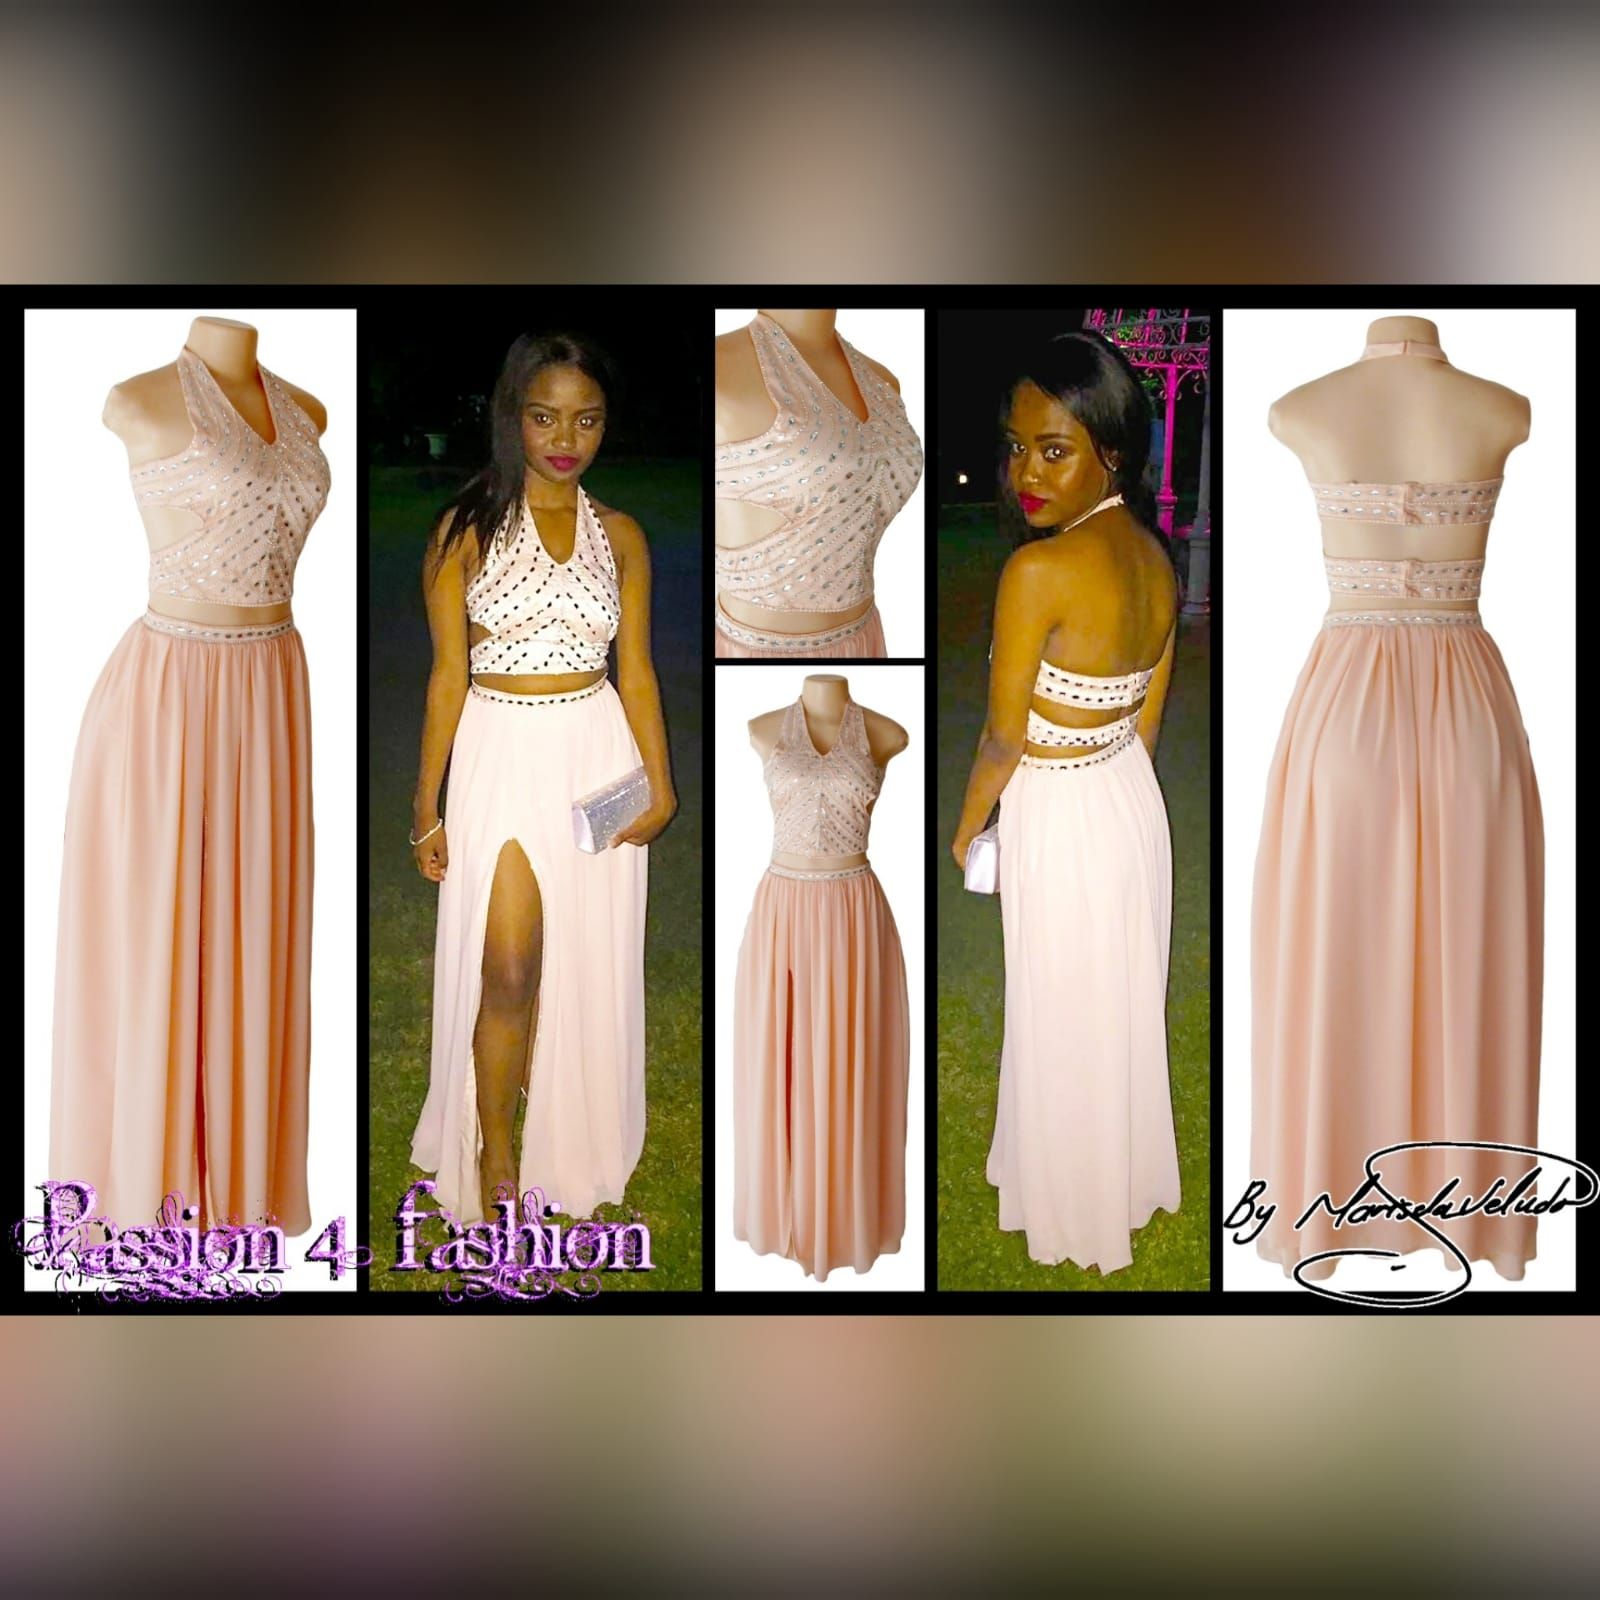 Pink nude 2 piece prom dress 4 pink nude 2 piece prom dress with crop top open on the sides, halter neck creating a v neckline with a naked back detailed with straps. Top detailed with patterned silver beading. Flowy long skirt with a slit and waistband detailed with silver beads.